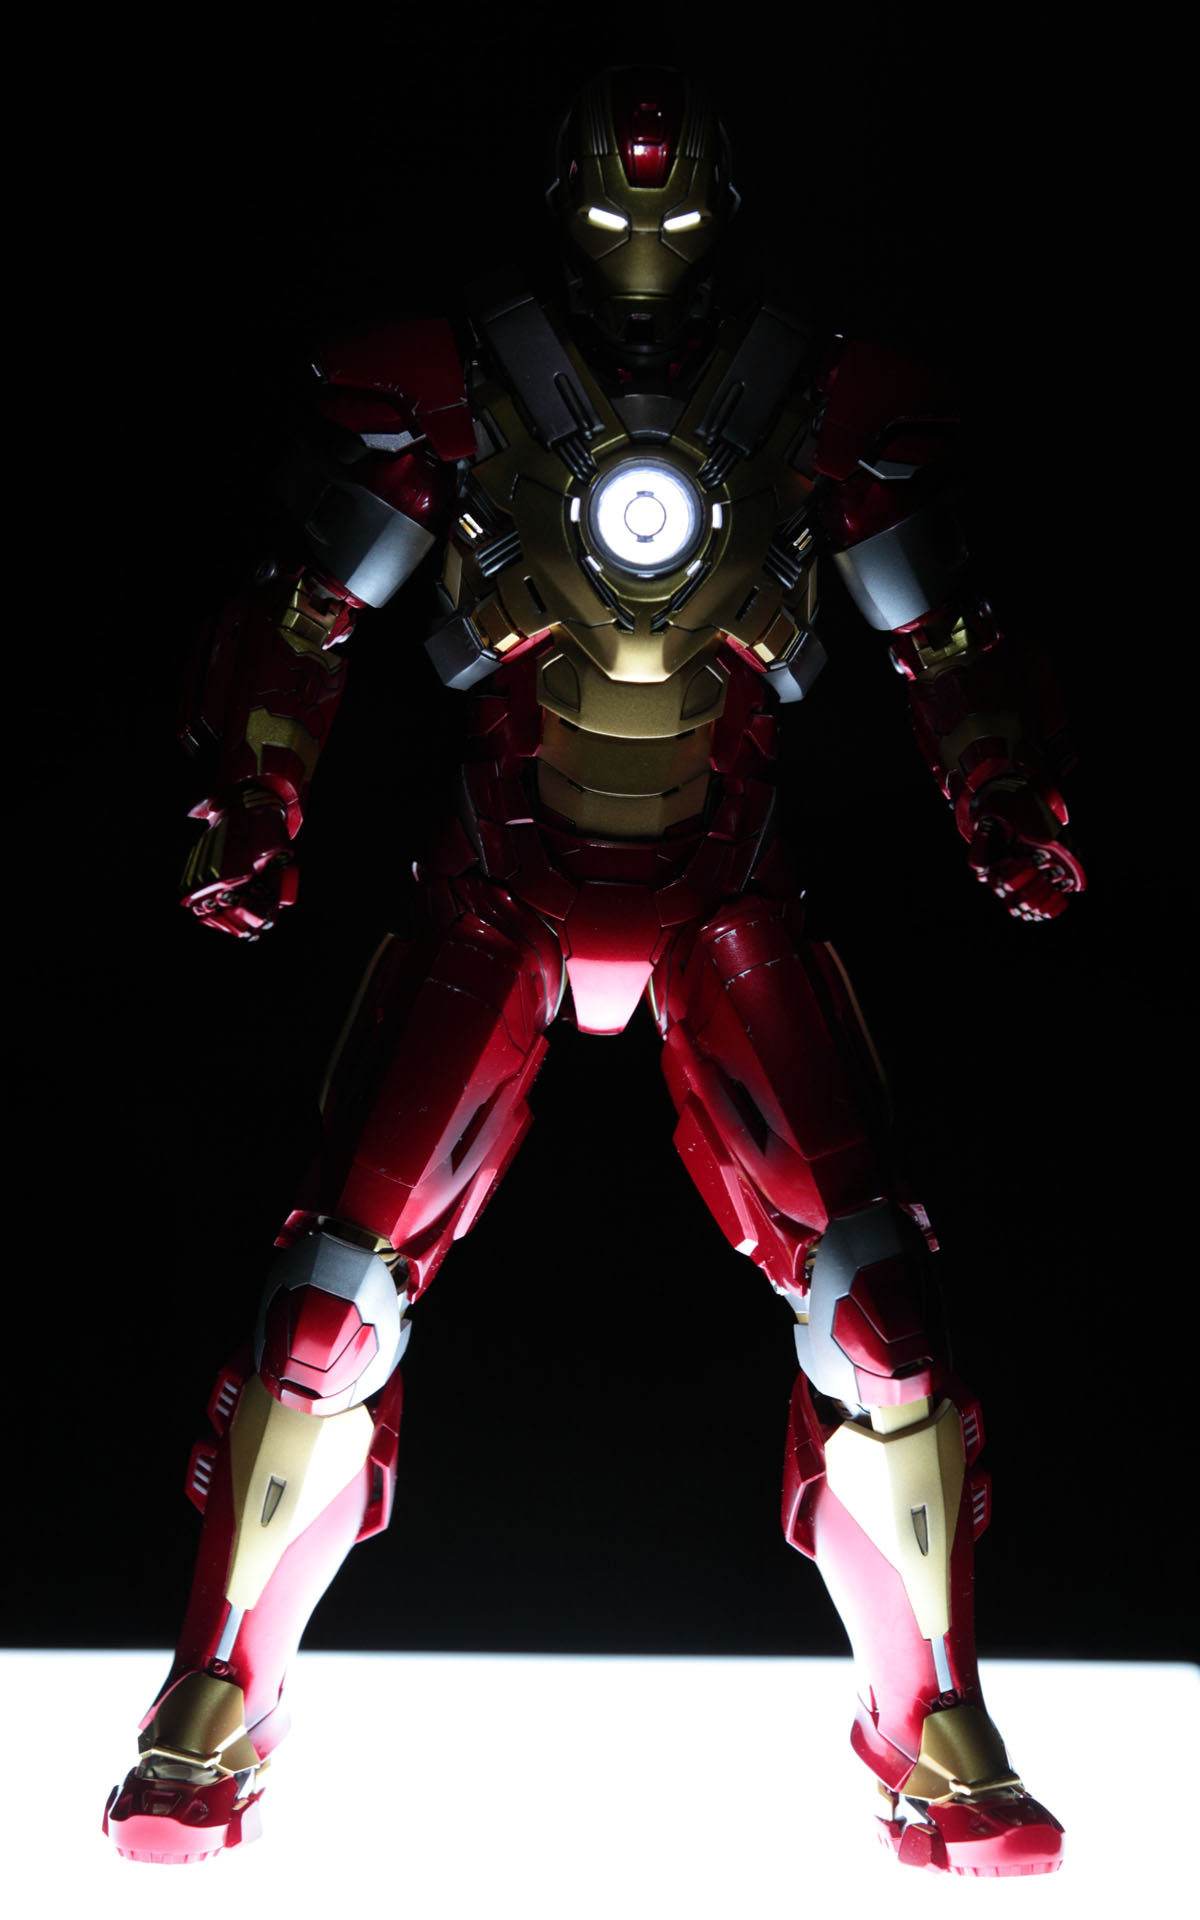 Movie Masterpiece U2013 1/6 Scale Fully Poseable Figure: Iron Man 3 U2013 Mark 17  Heartbreaker